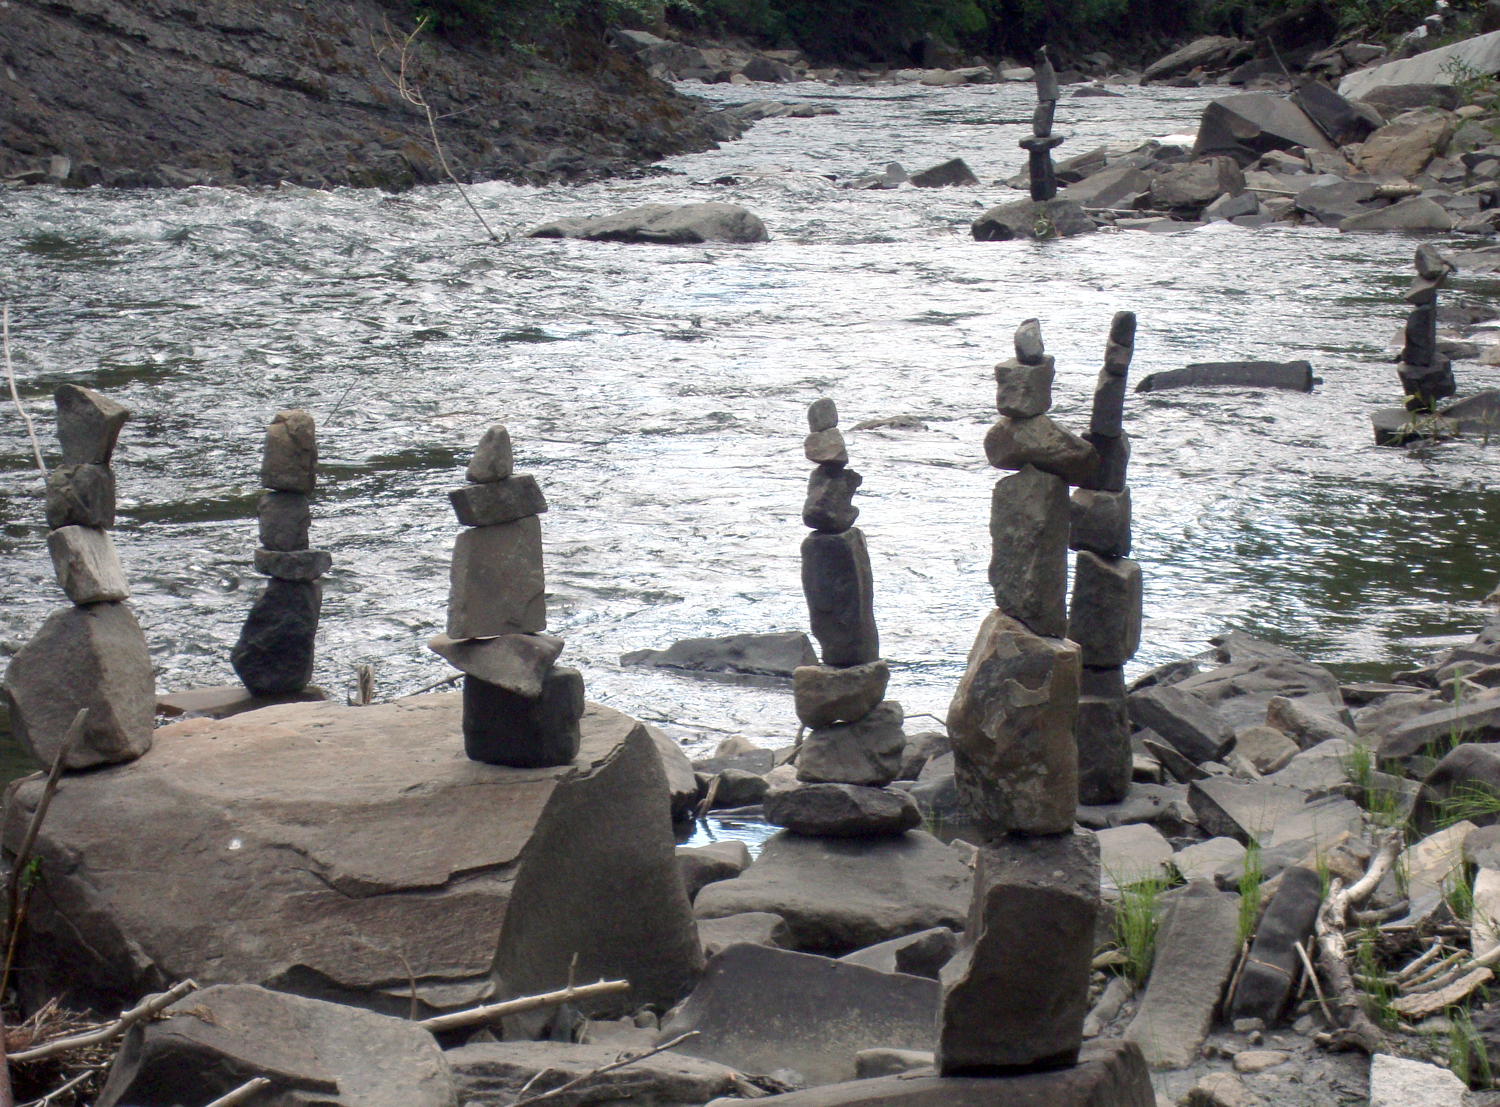 Cairns along the Crystal River, 2012.